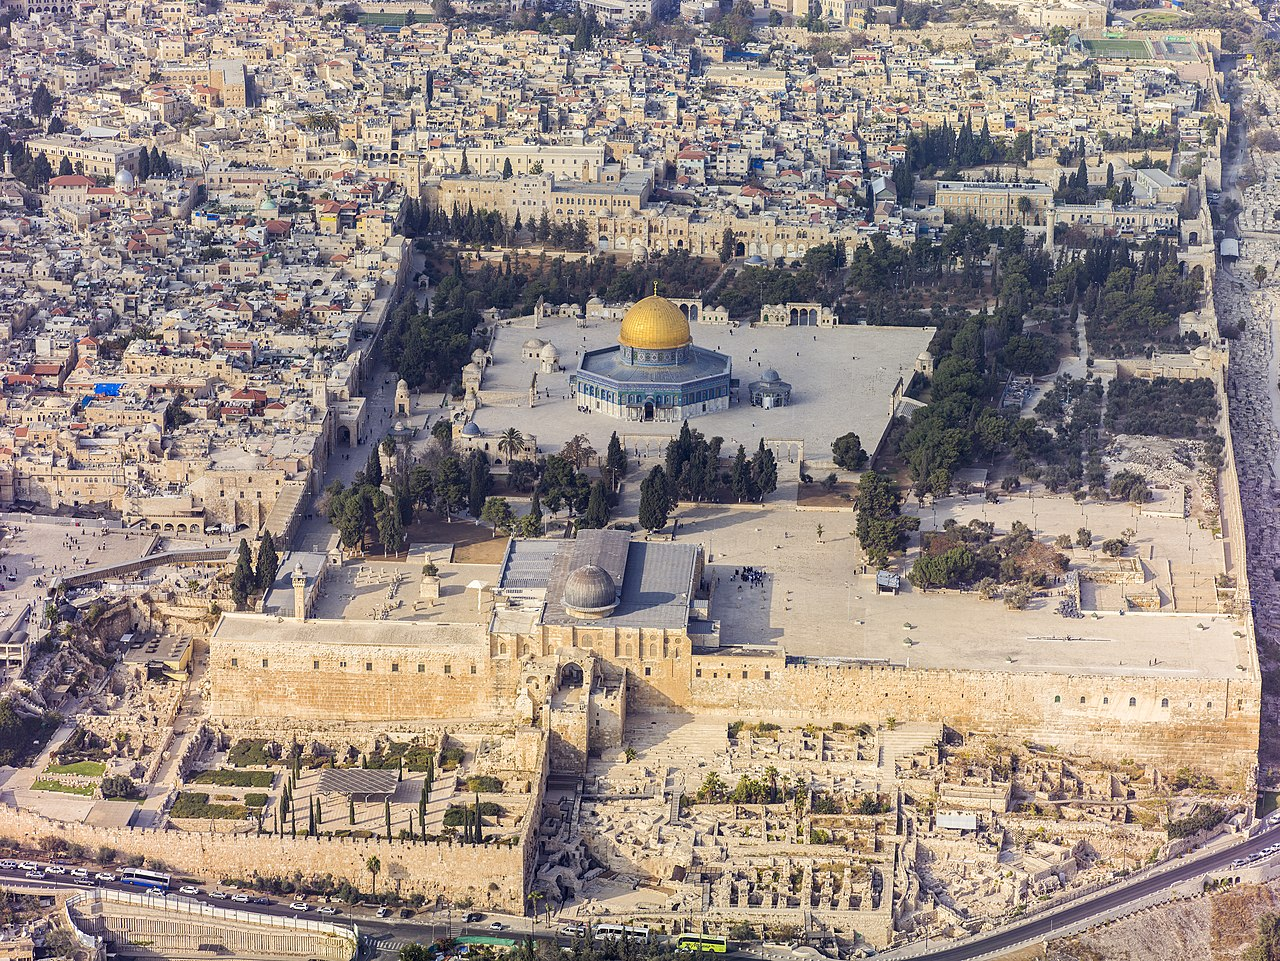 Jerusalem's Temple Mount, from the Air